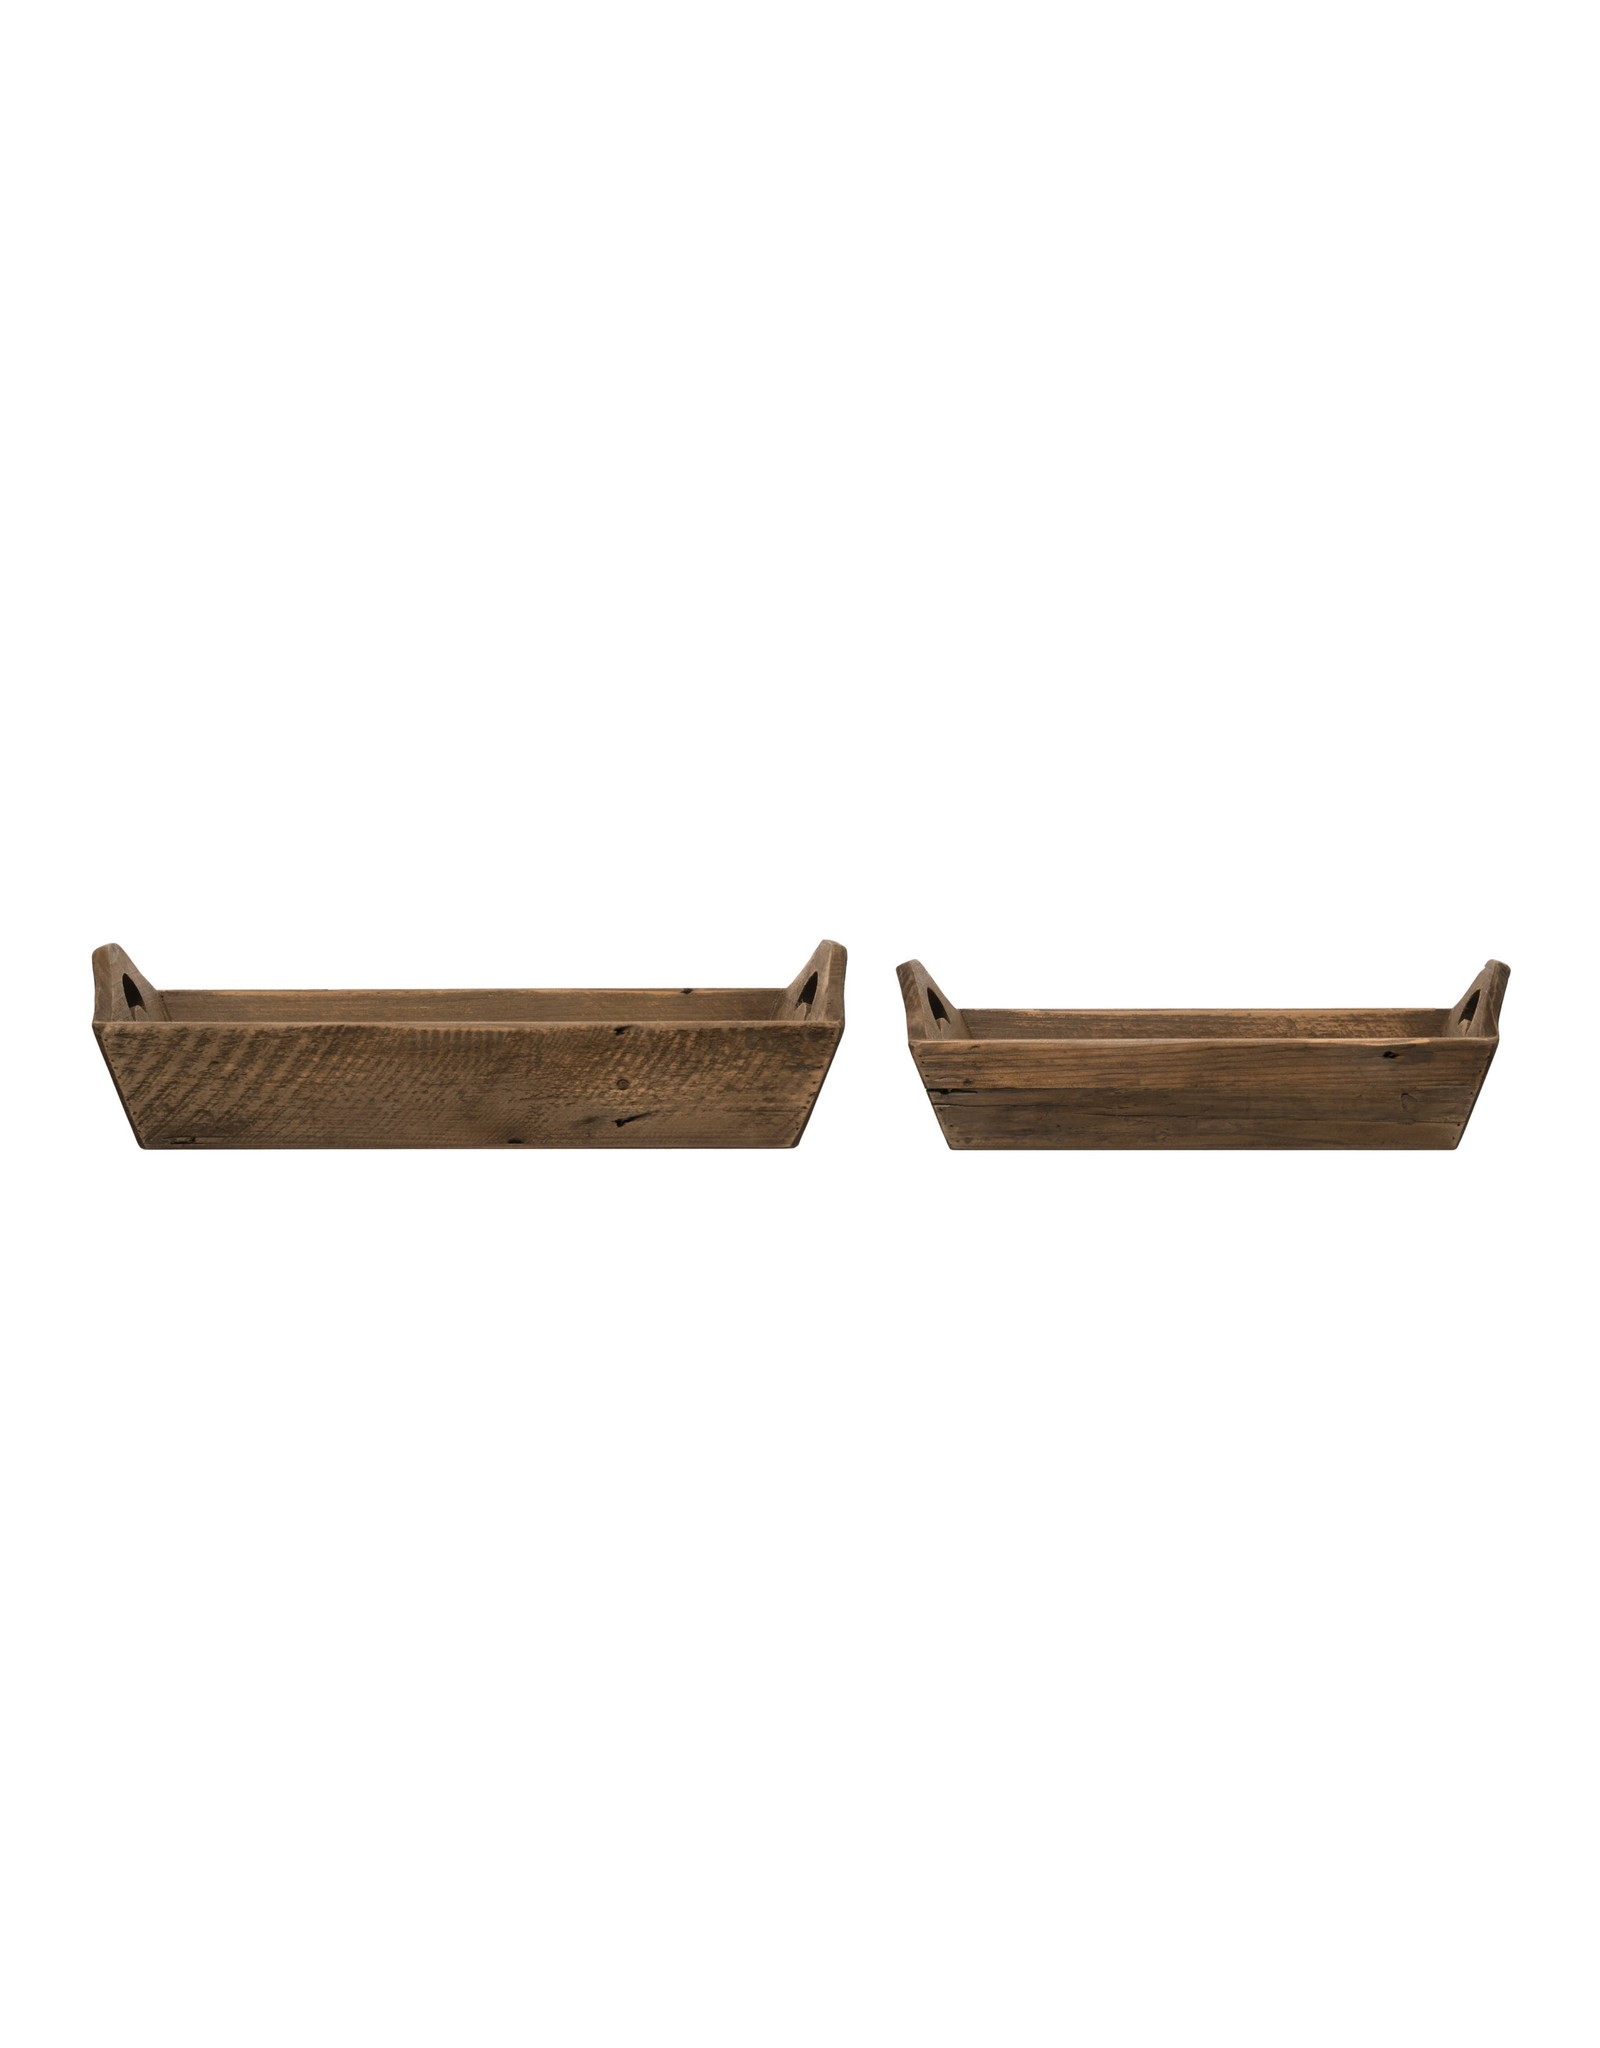 Fir Wood Trays with Handles (Set of 2 Sizes)